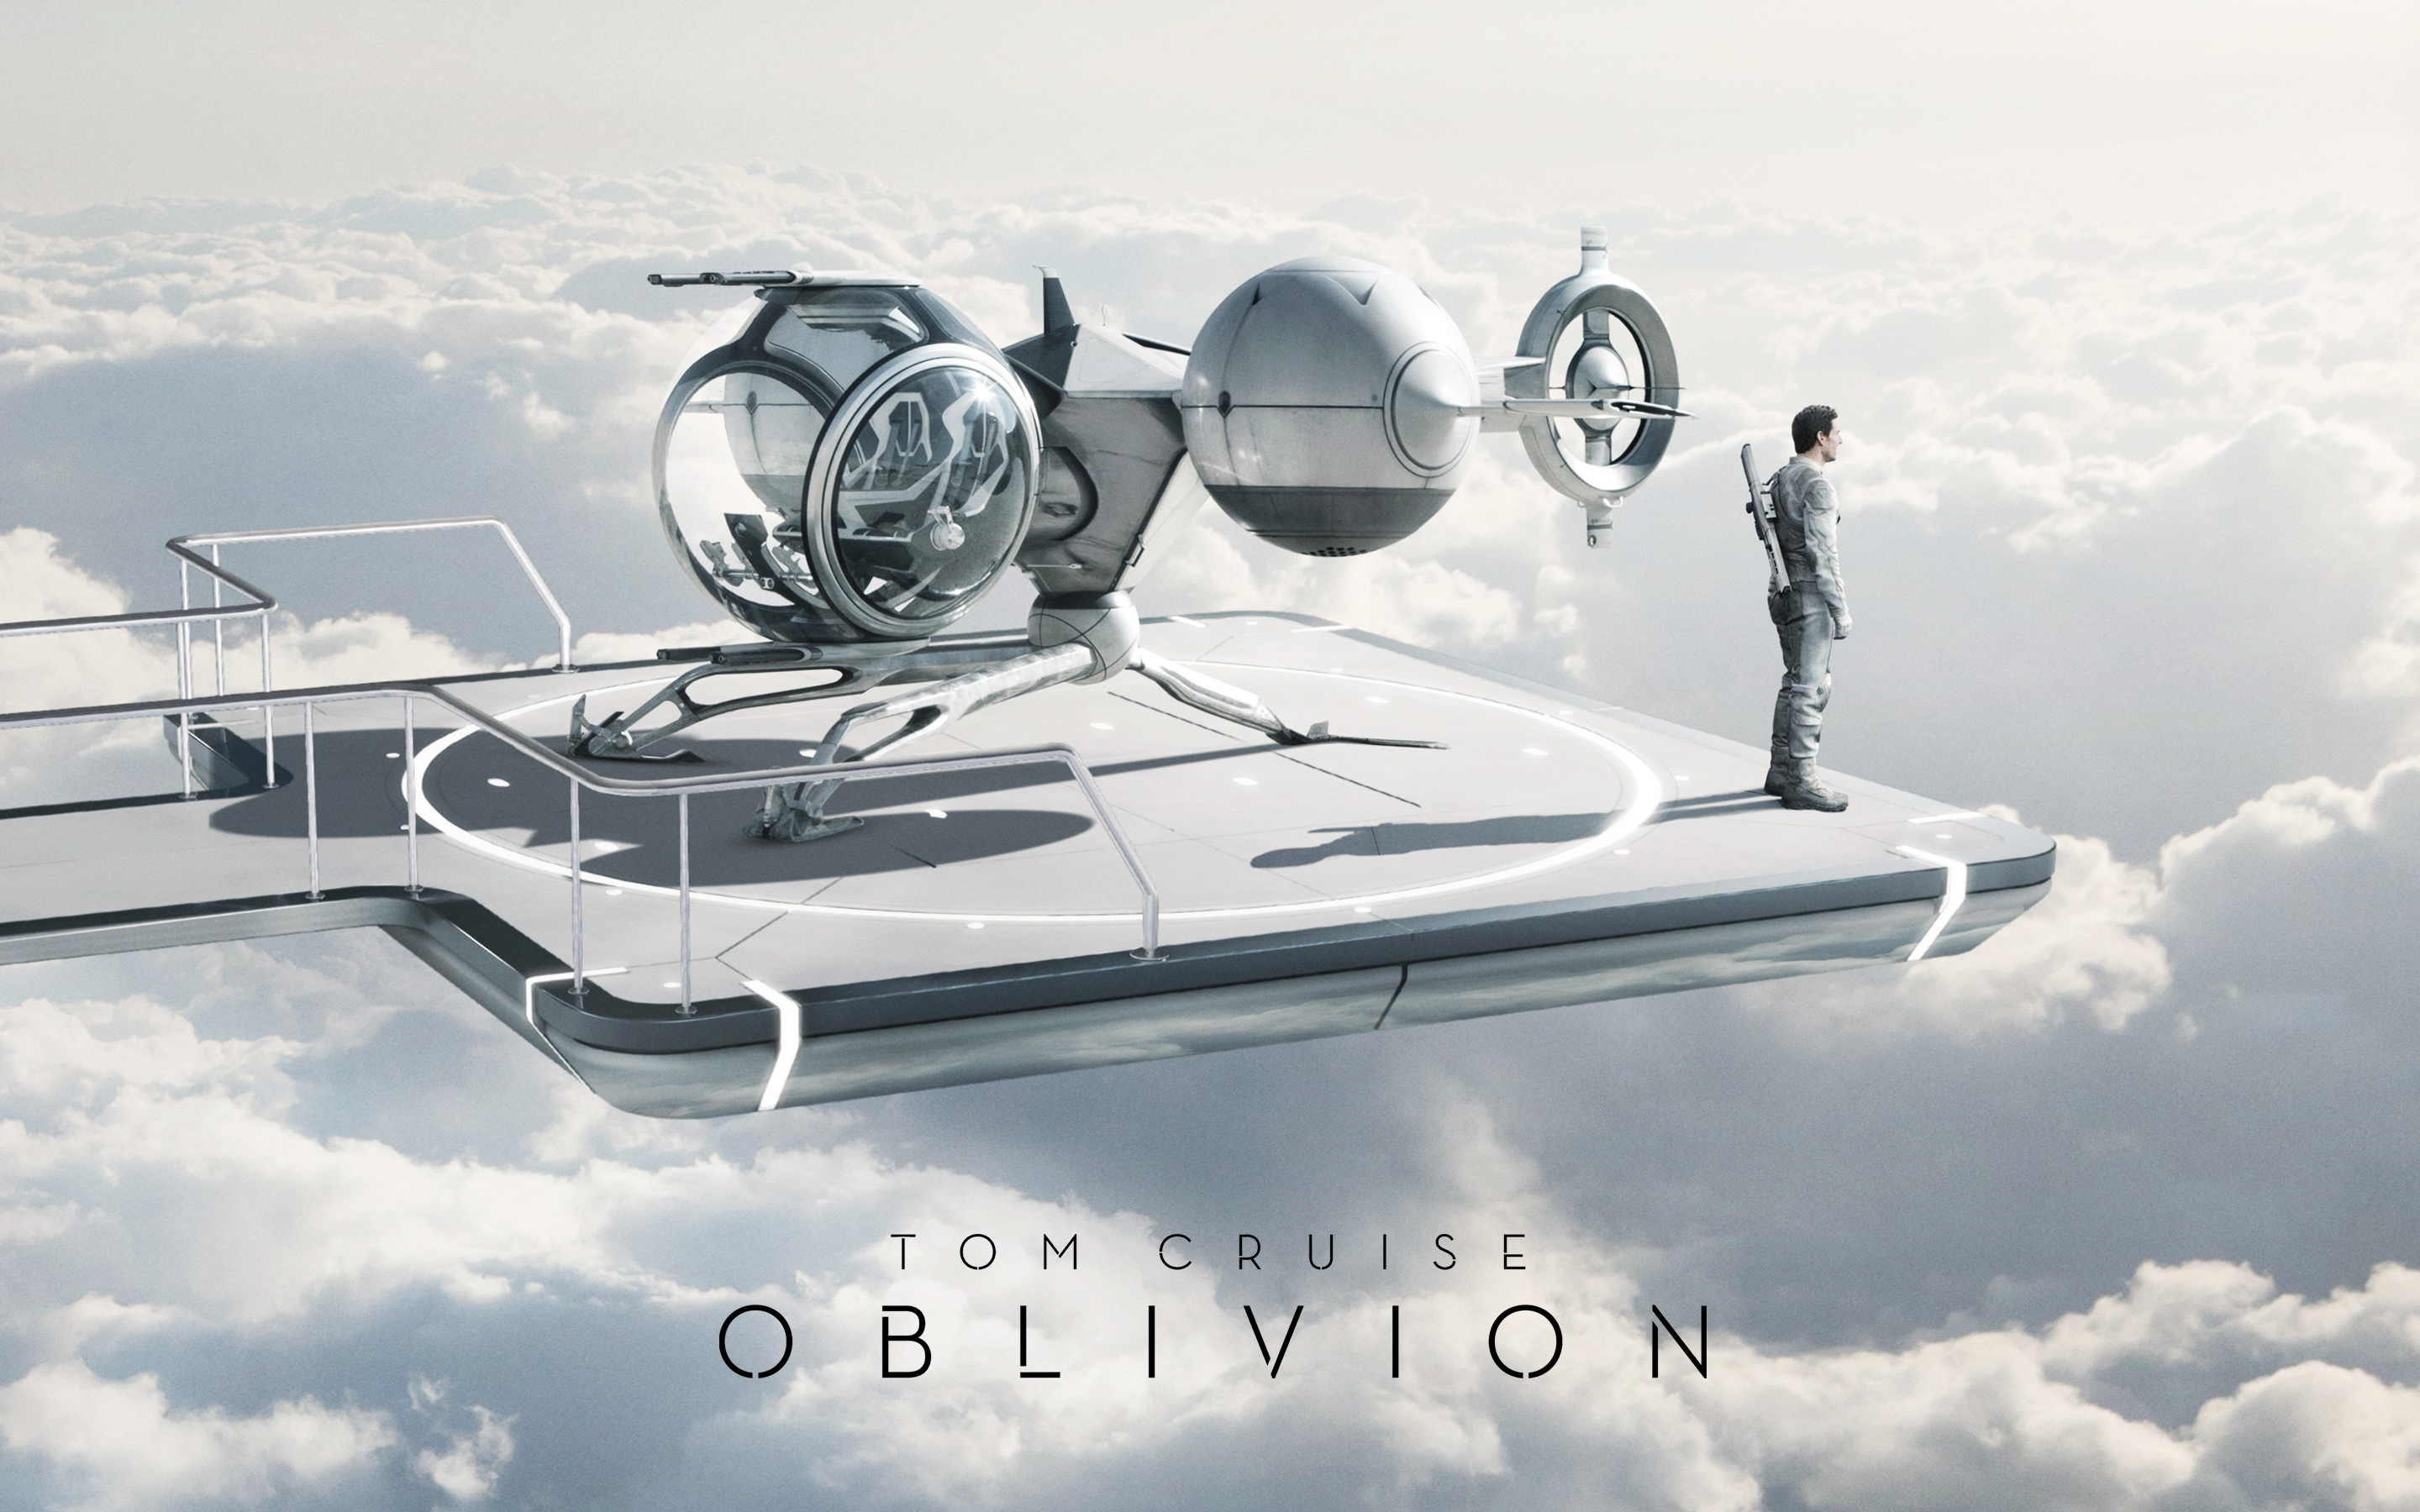 tom cruise oblivion movie facebook covers | wallpapers hd